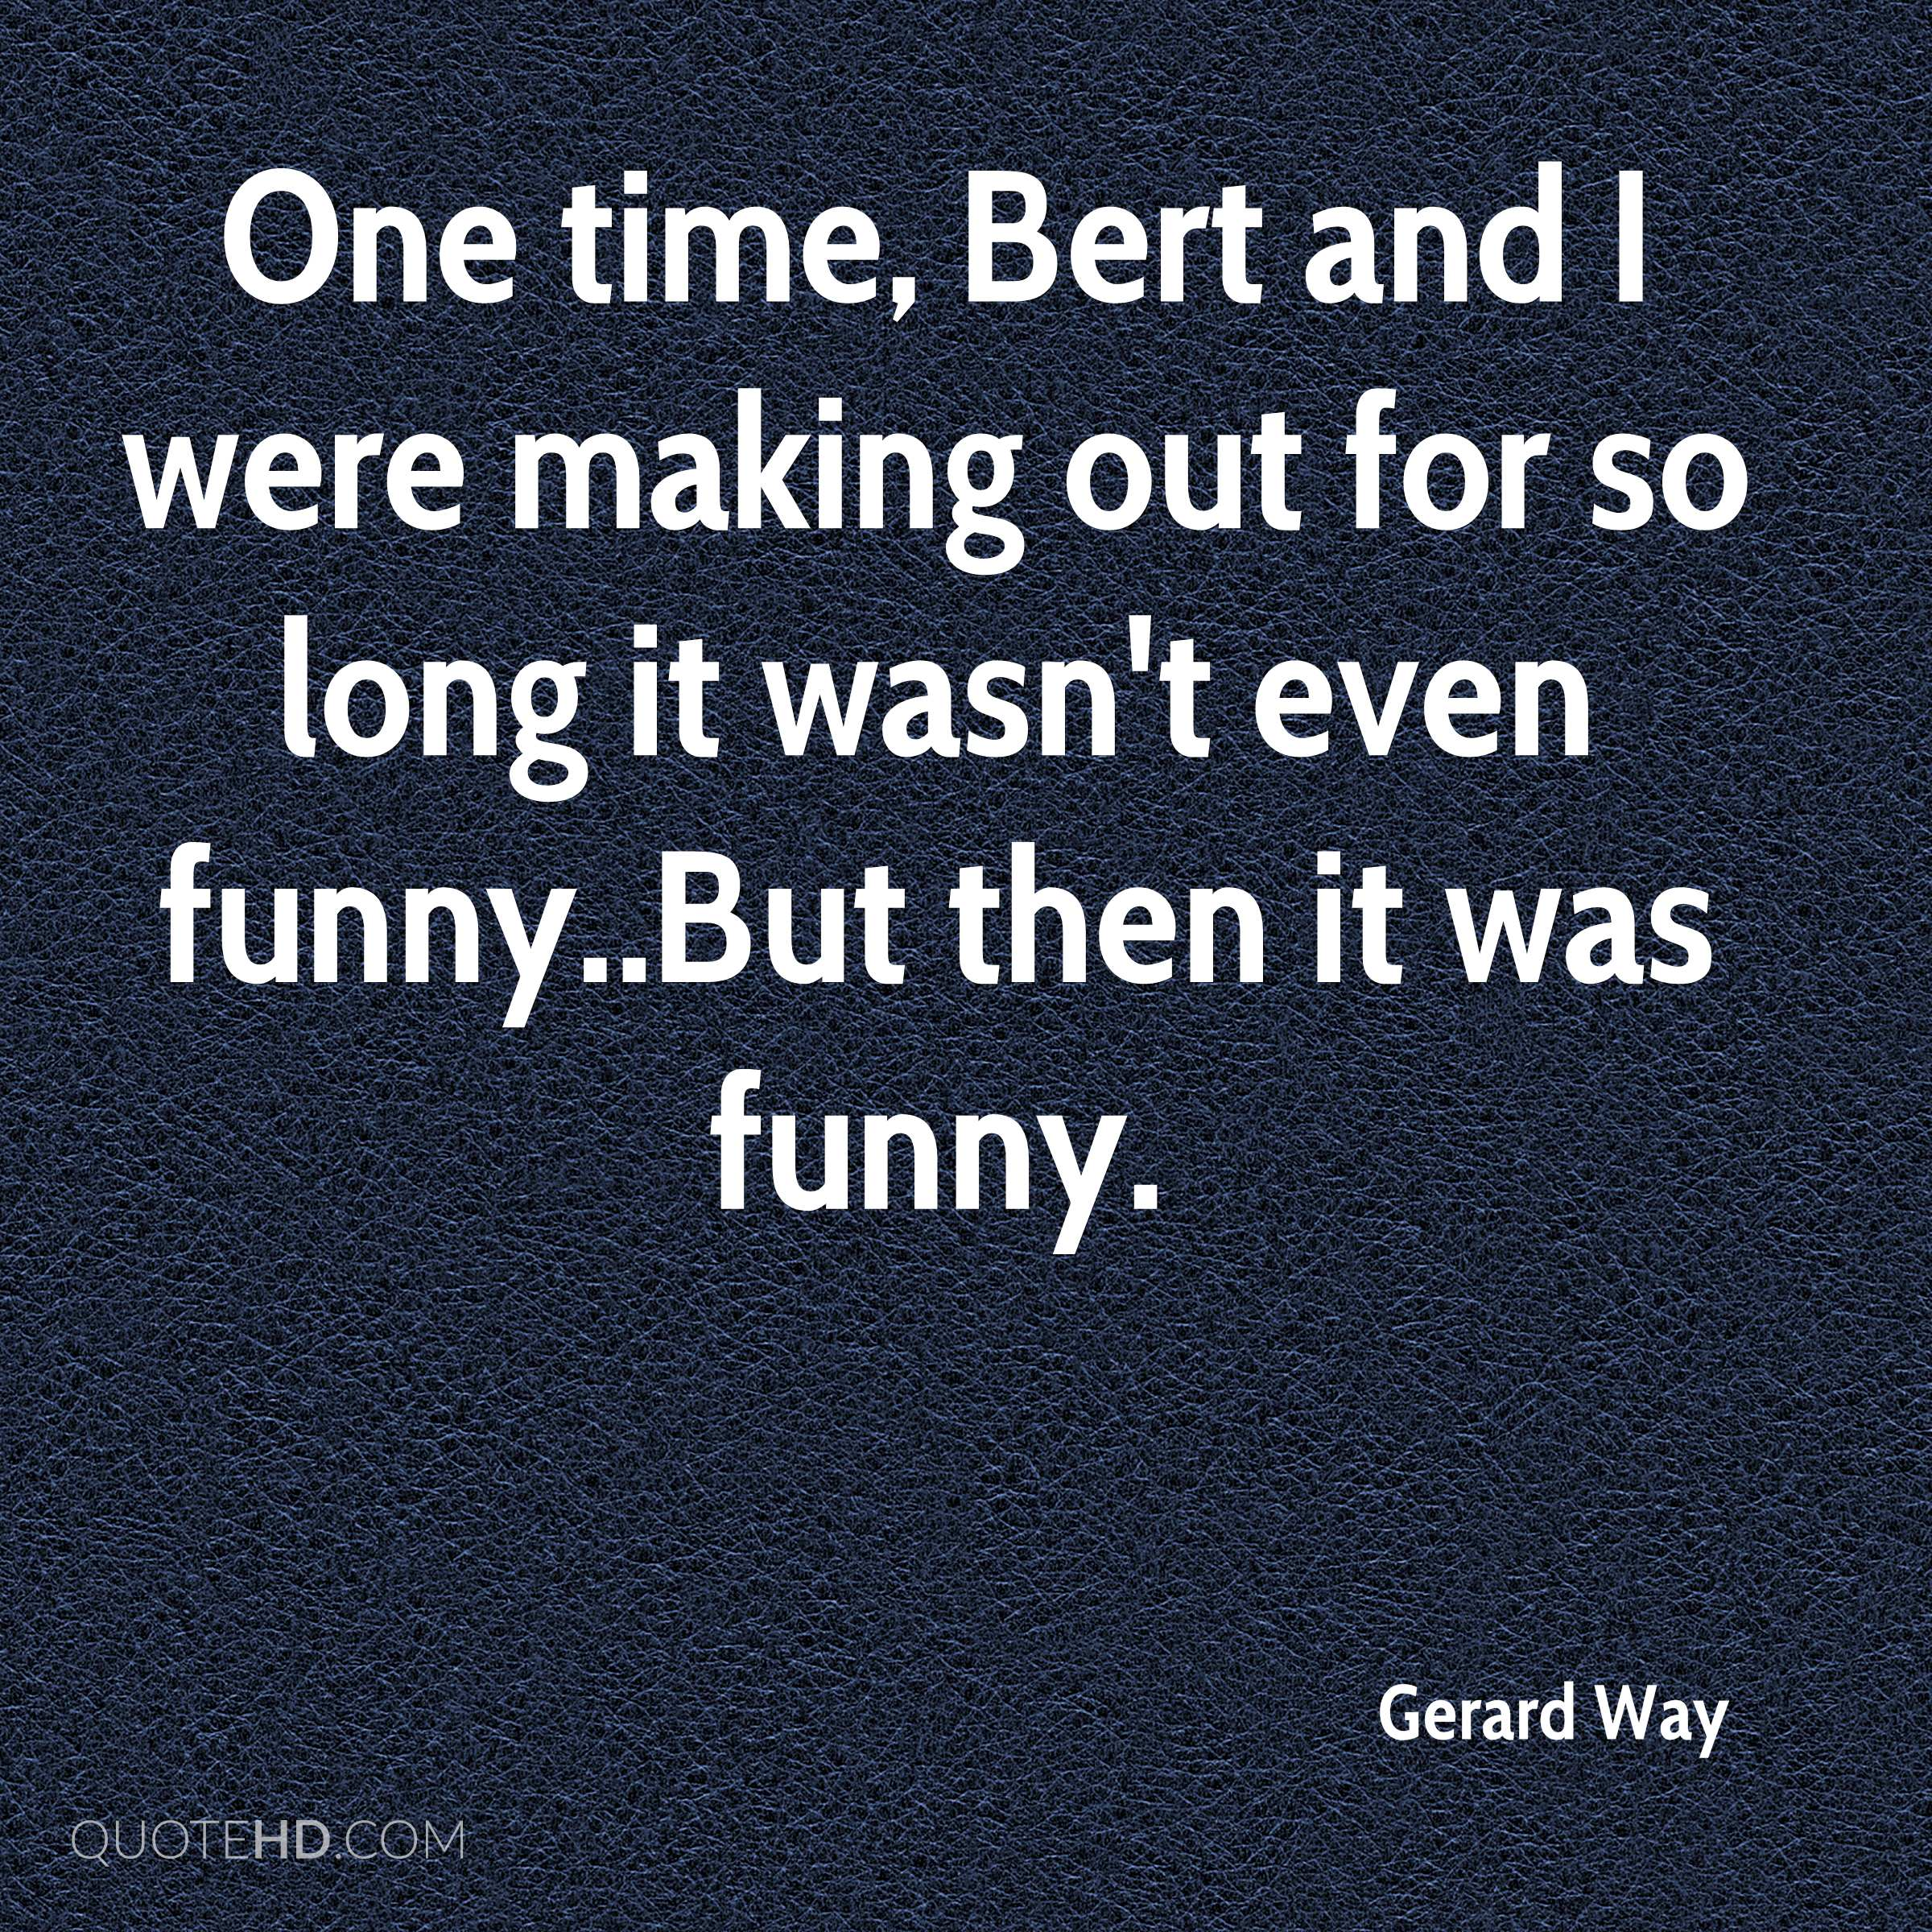 One time, Bert and I were making out for so long it wasn't even funny..But then it was funny.